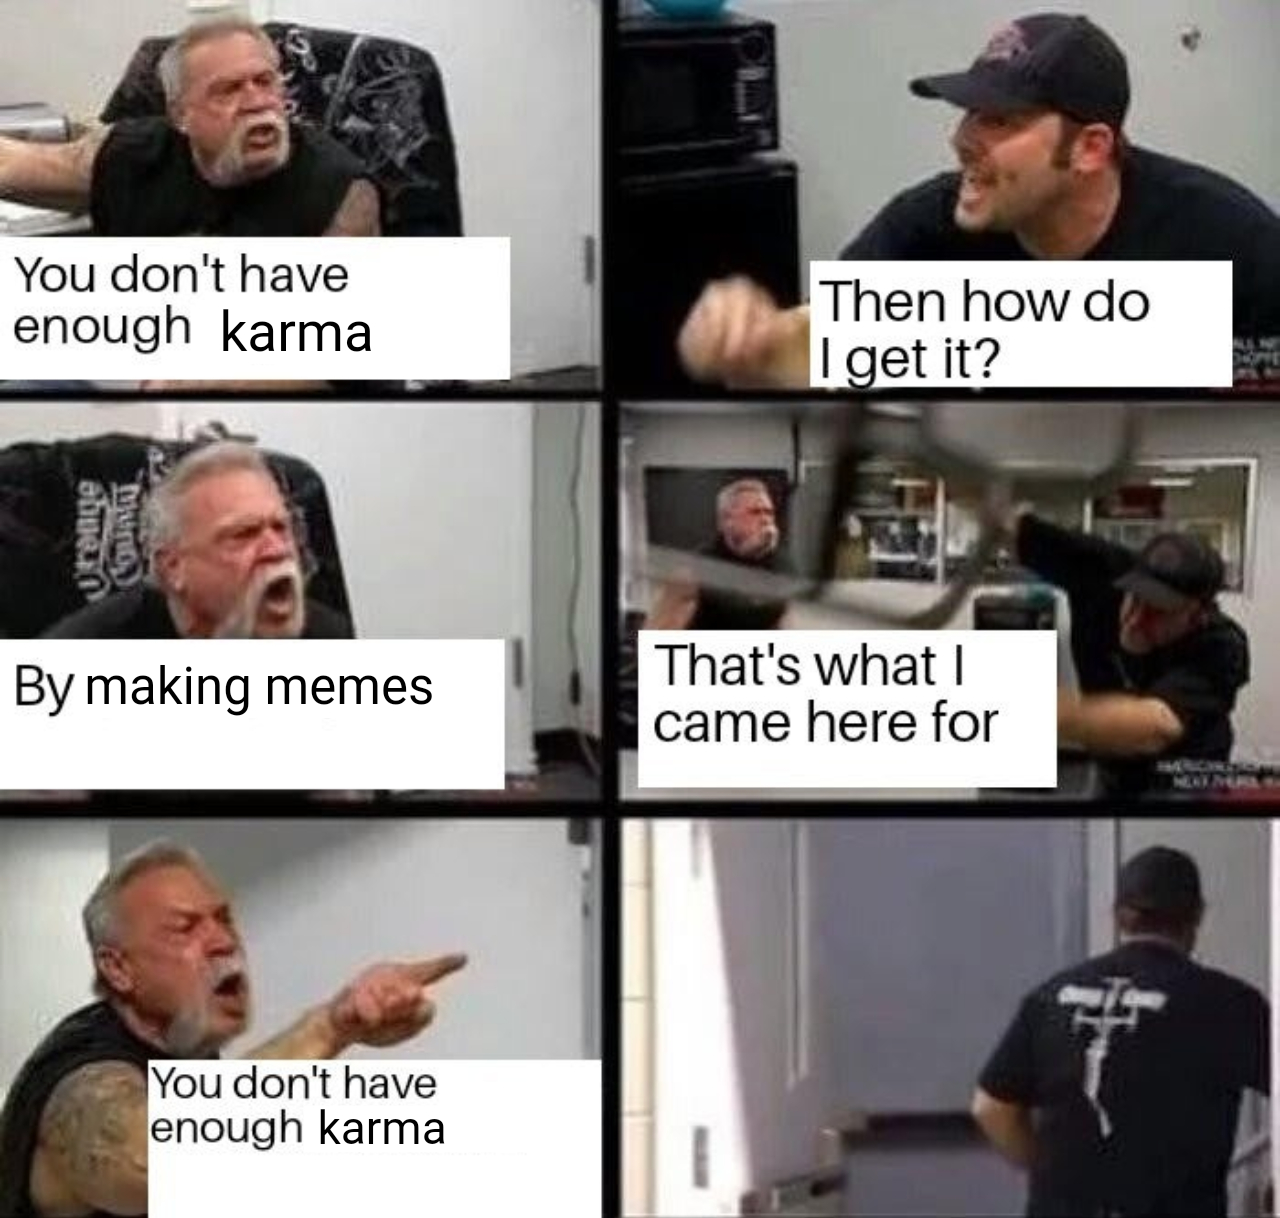 New users be like